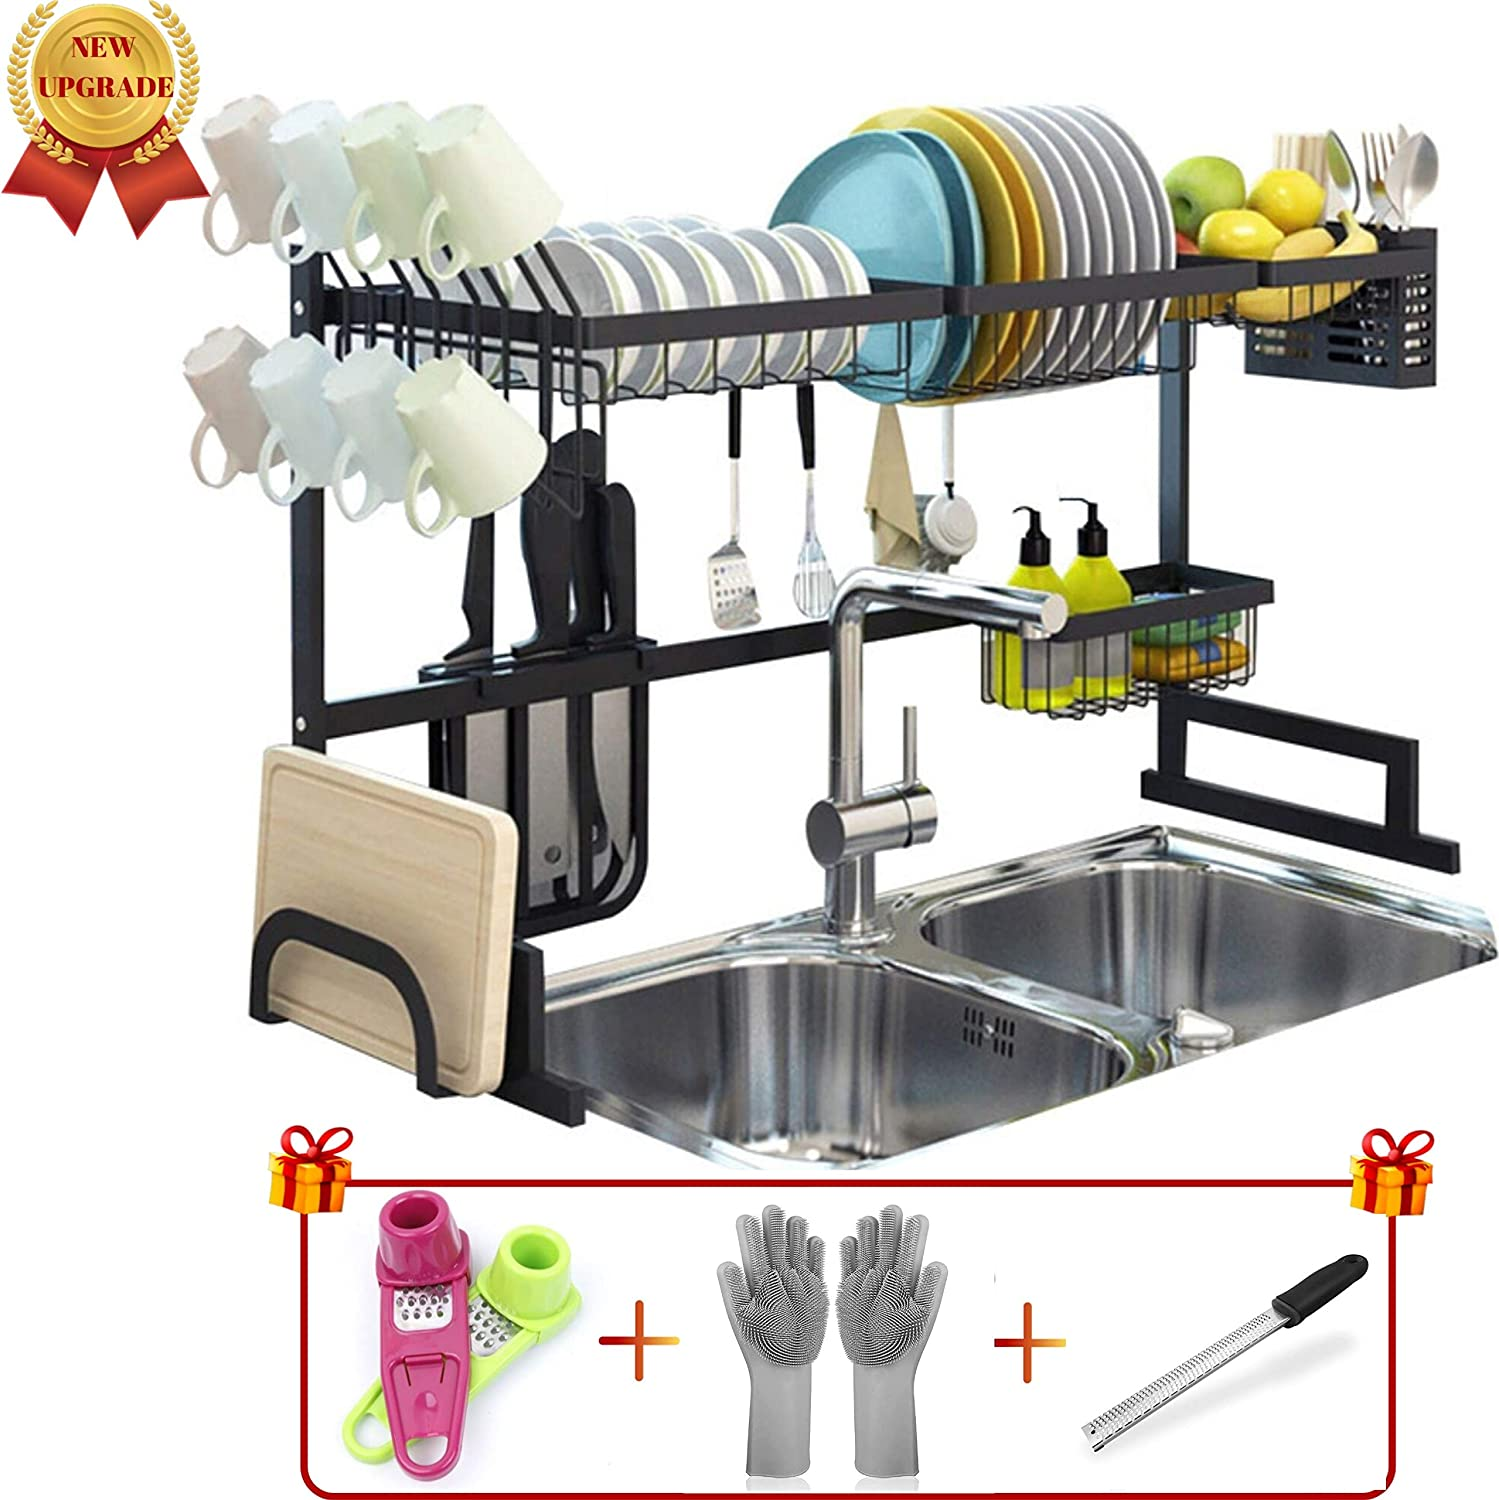 "Over The Sink(33"") Dish Drying Rack black Topkitch (New Upgrade) With Utensils Holder, stainless steel (Sink size≤33in) counter space + Garlic Grater + Magic Gloves + Multi hand Grater"